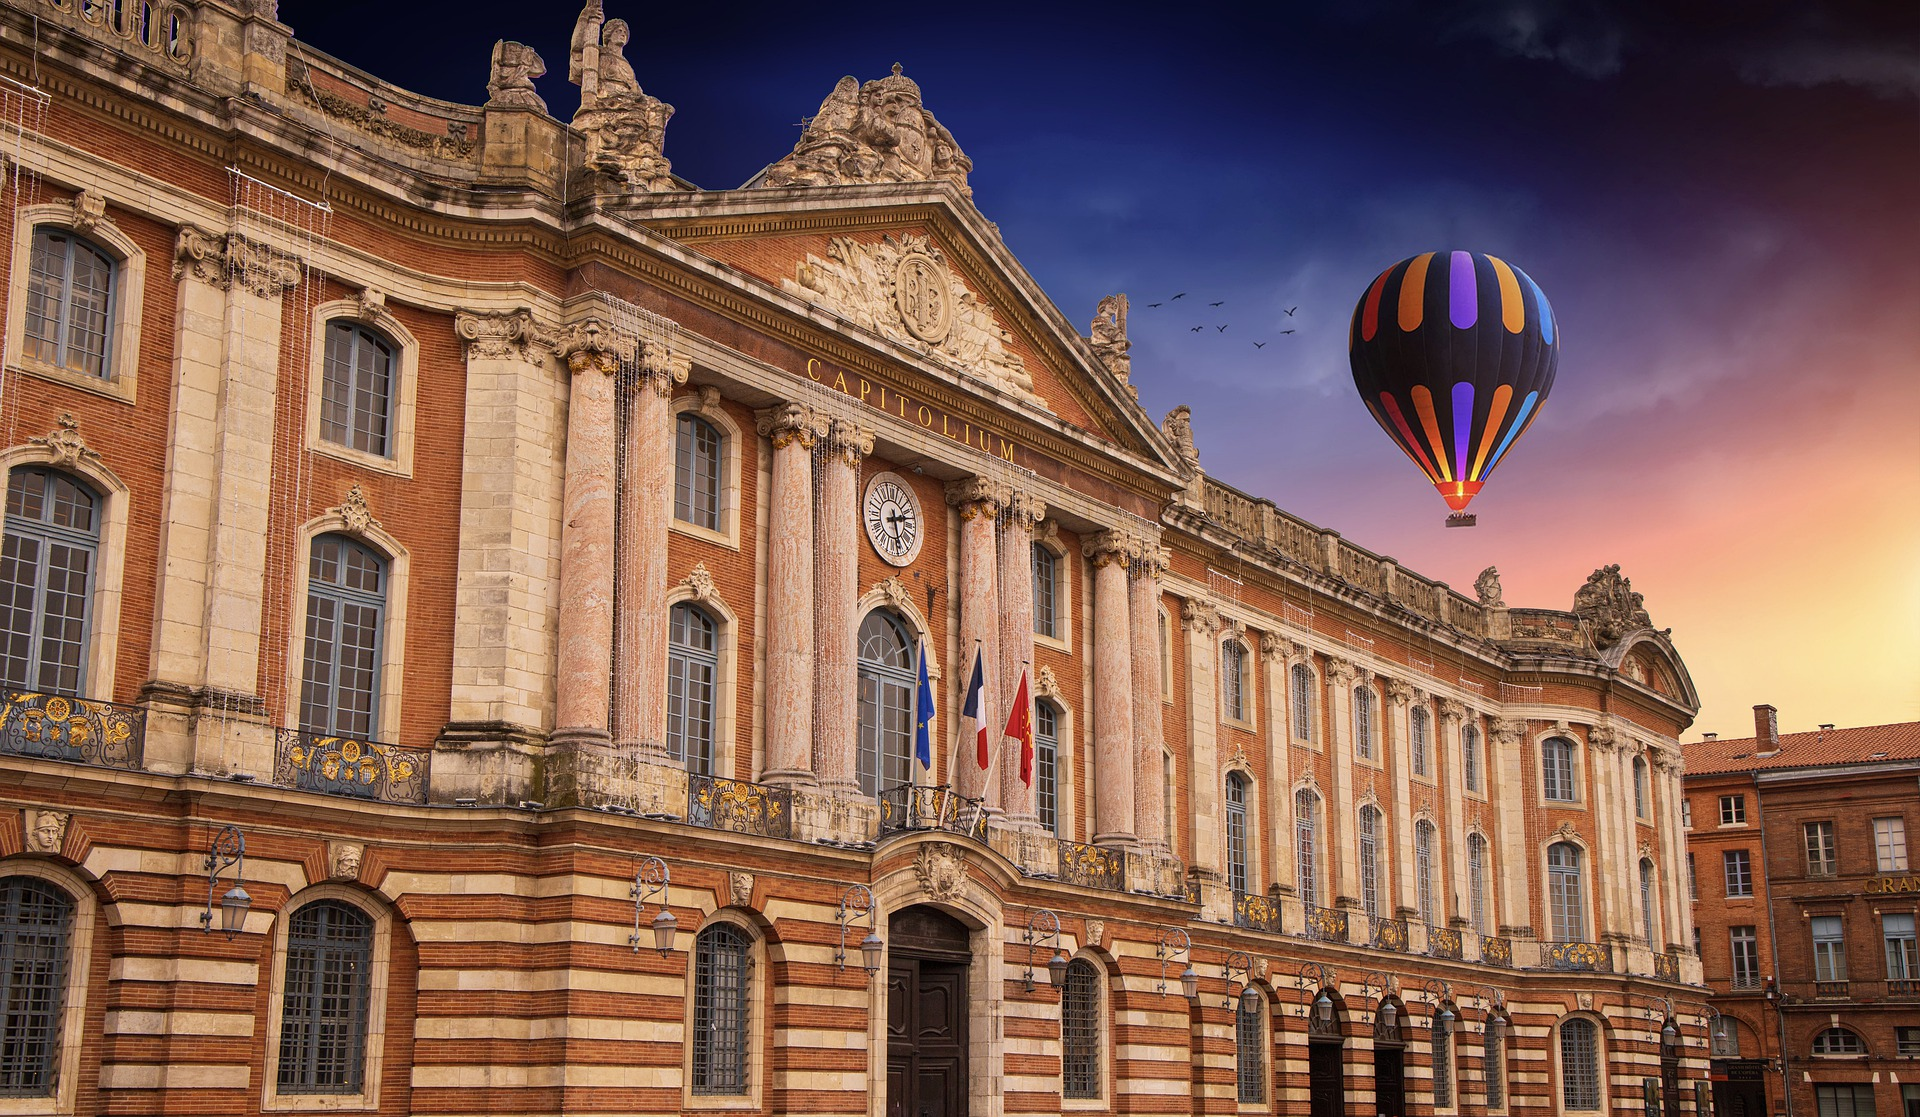 Main image of article: Toulouse